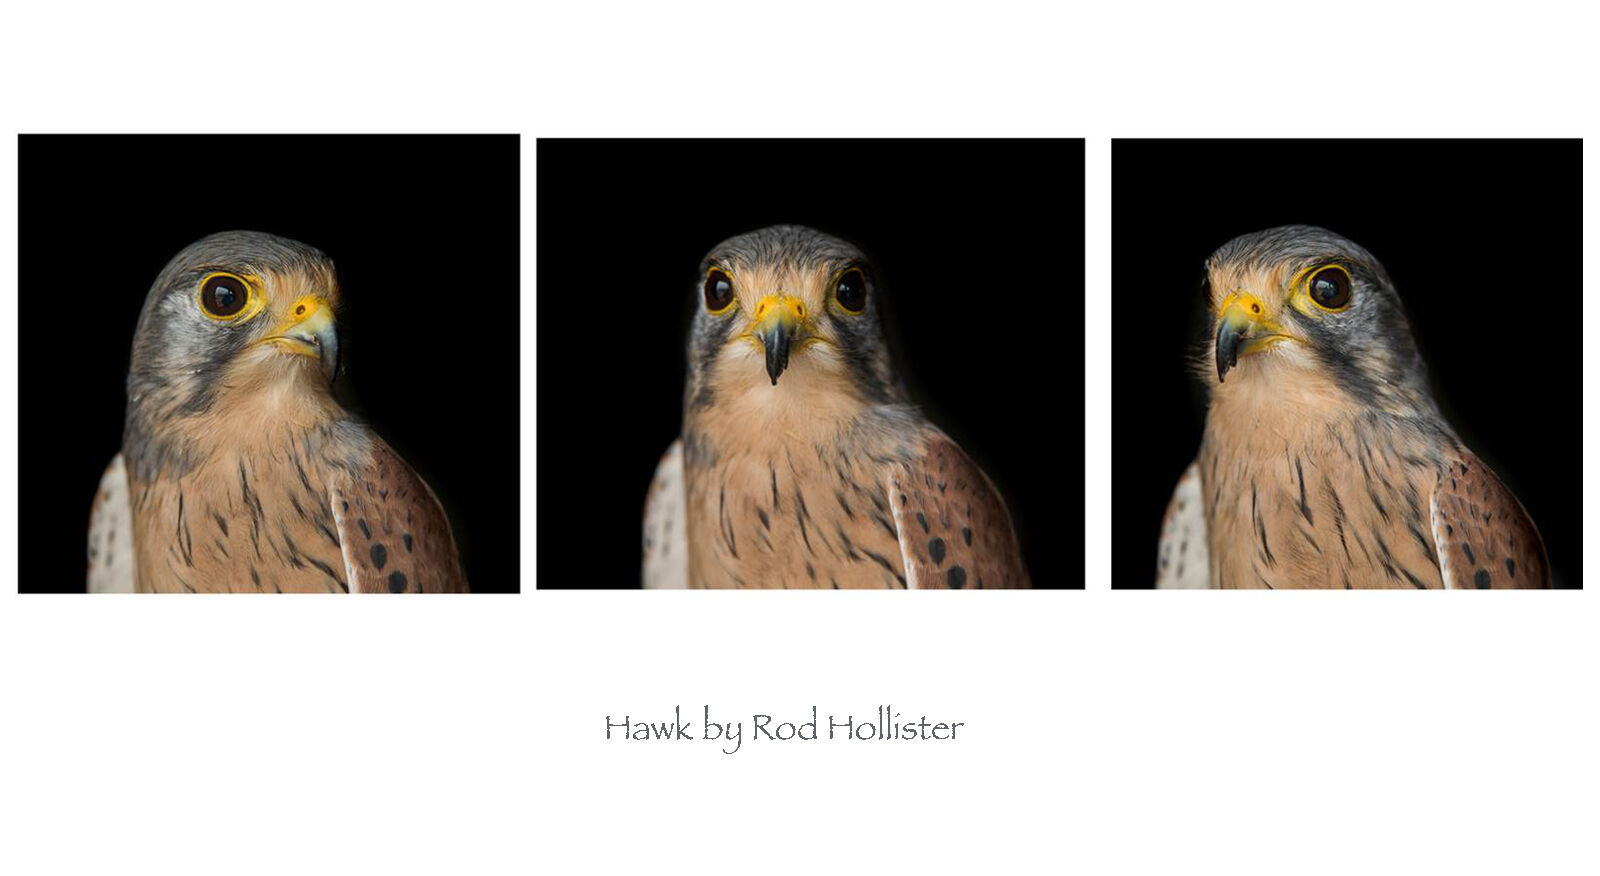 Joint 2nd: Hawk by Rod Hollister